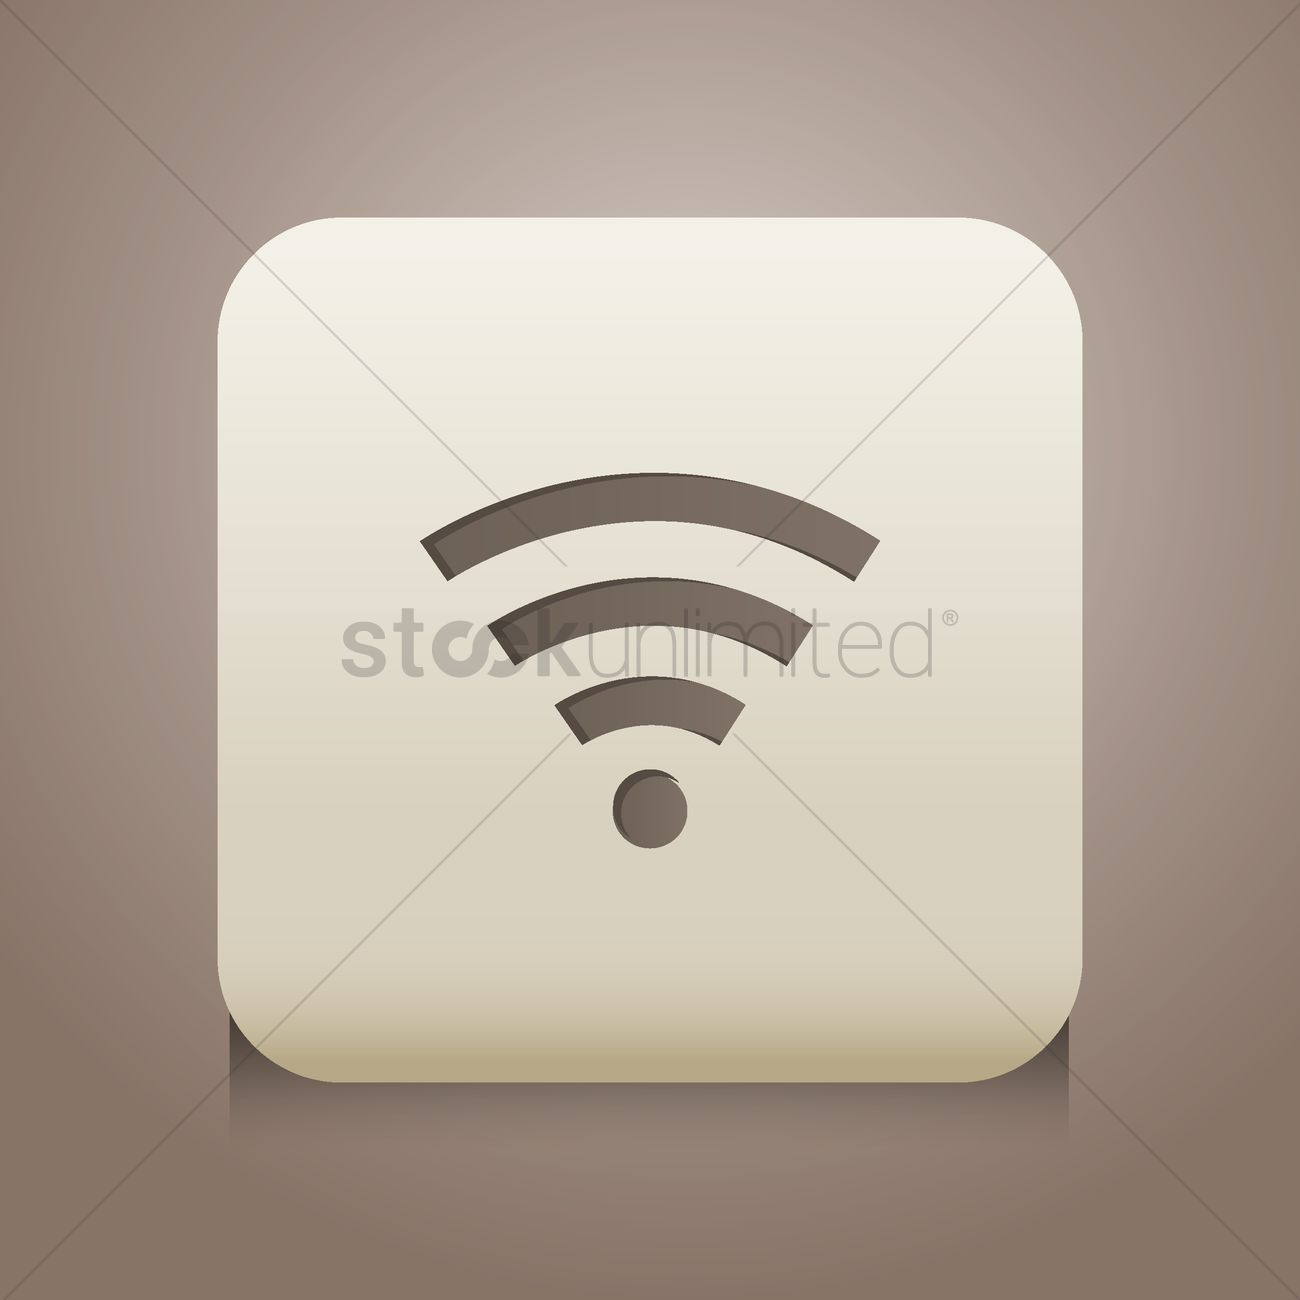 free wifi icon vector image 1587161 stockunlimited rh stockunlimited com no wifi icon vector wifi icon vector free